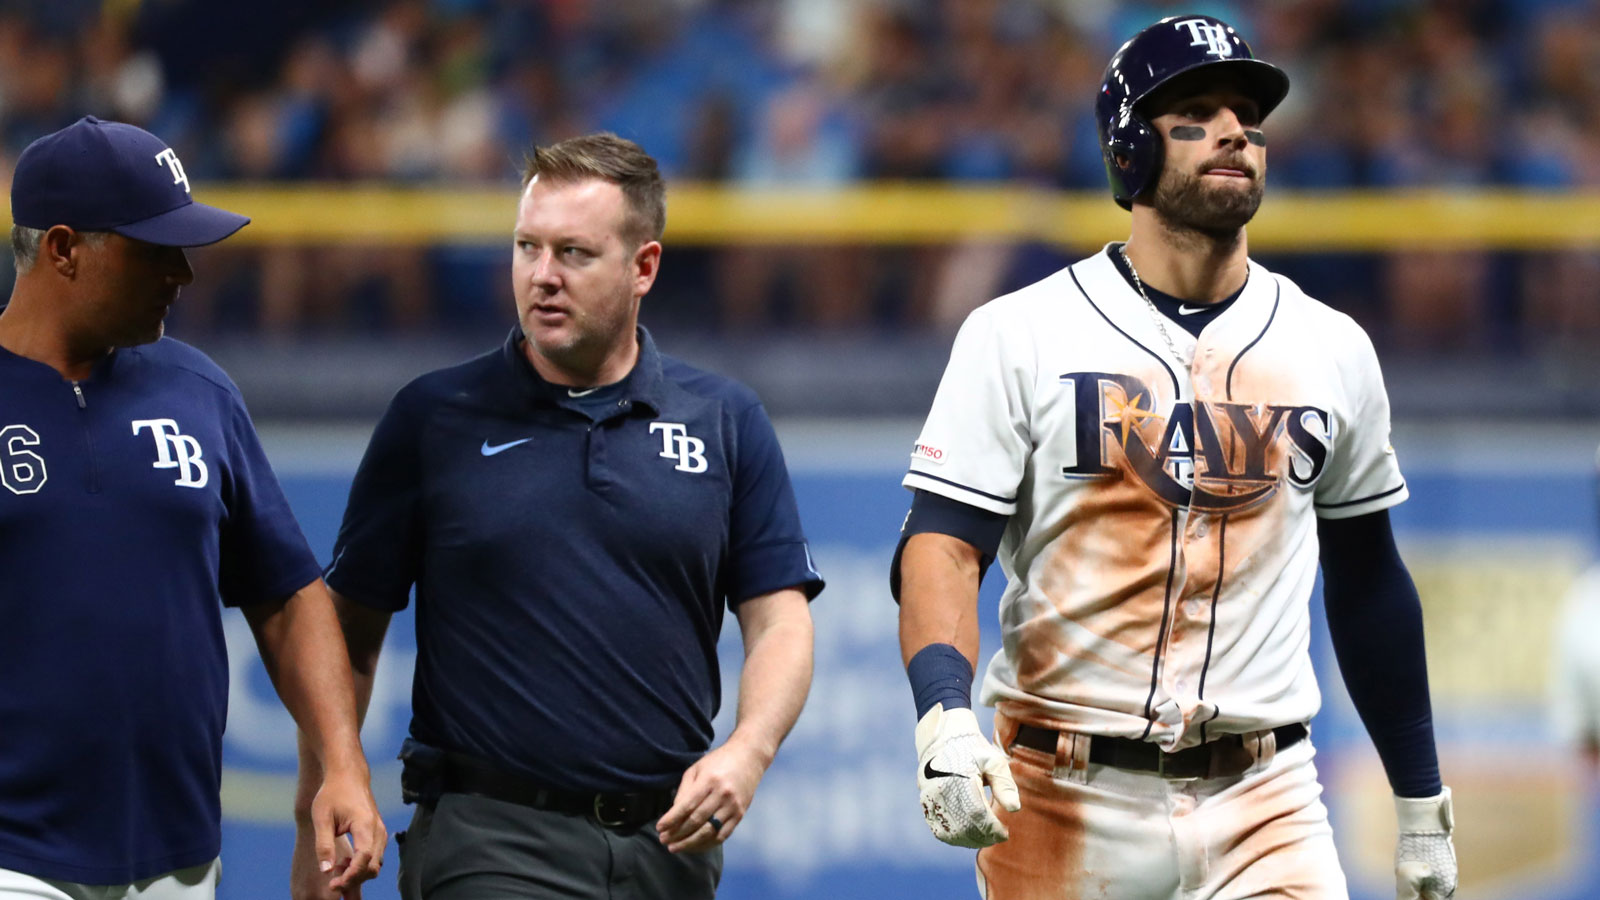 Rays place CF Kevin Kiermaier on 10-day IL with sprained left thumb injury